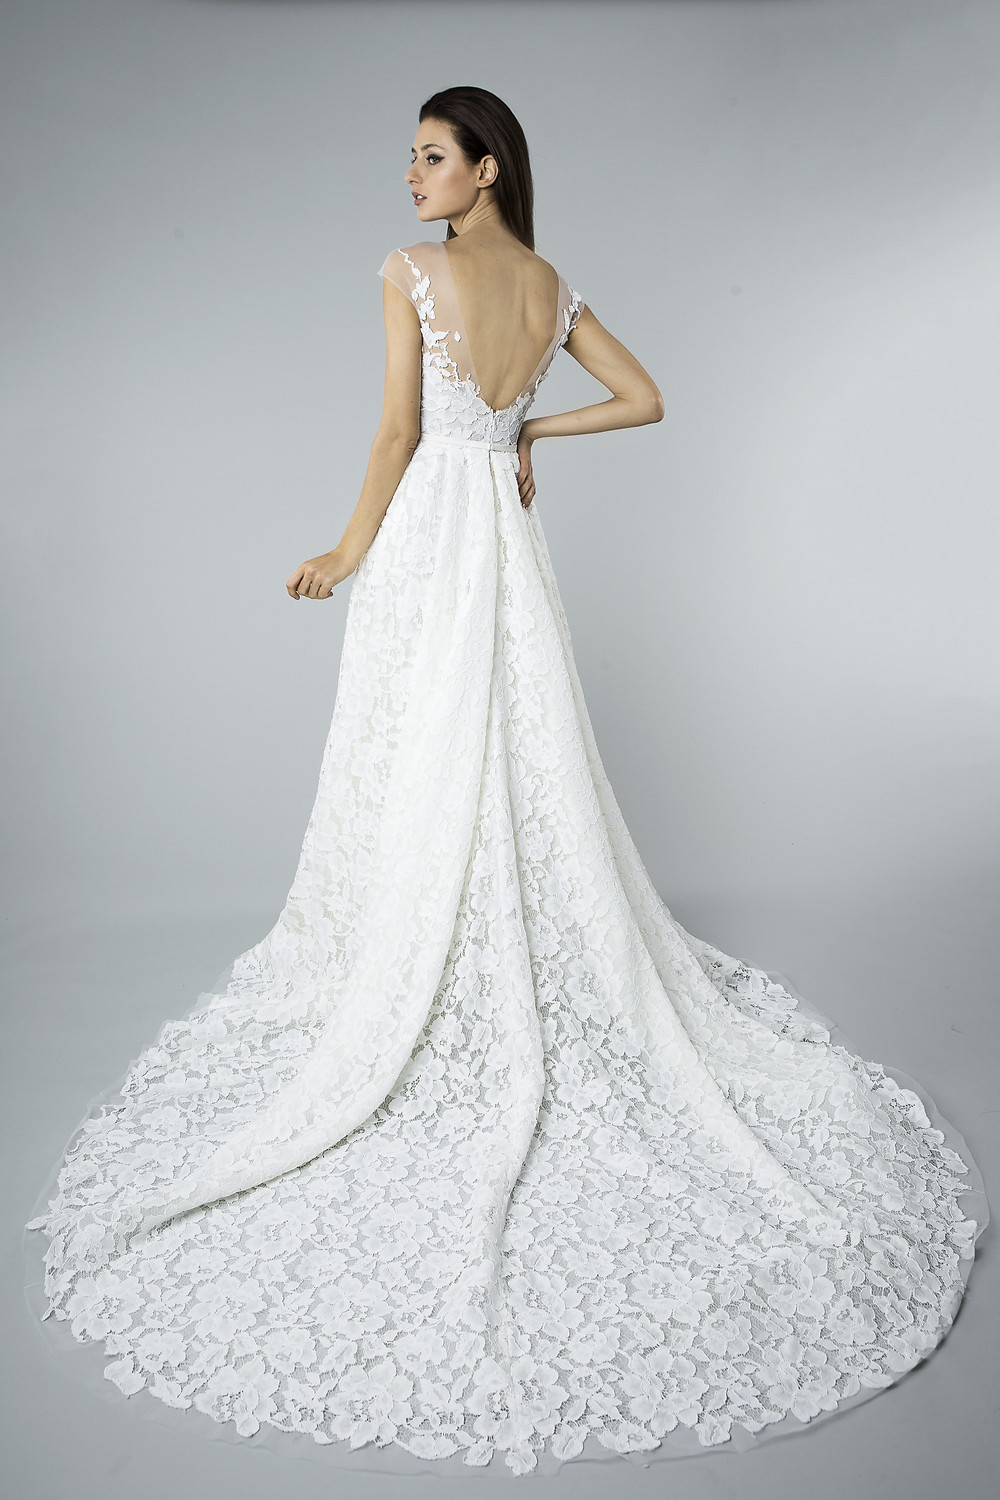 A Mira Zwillinger lace and mesh A-line wedding dress with a low back